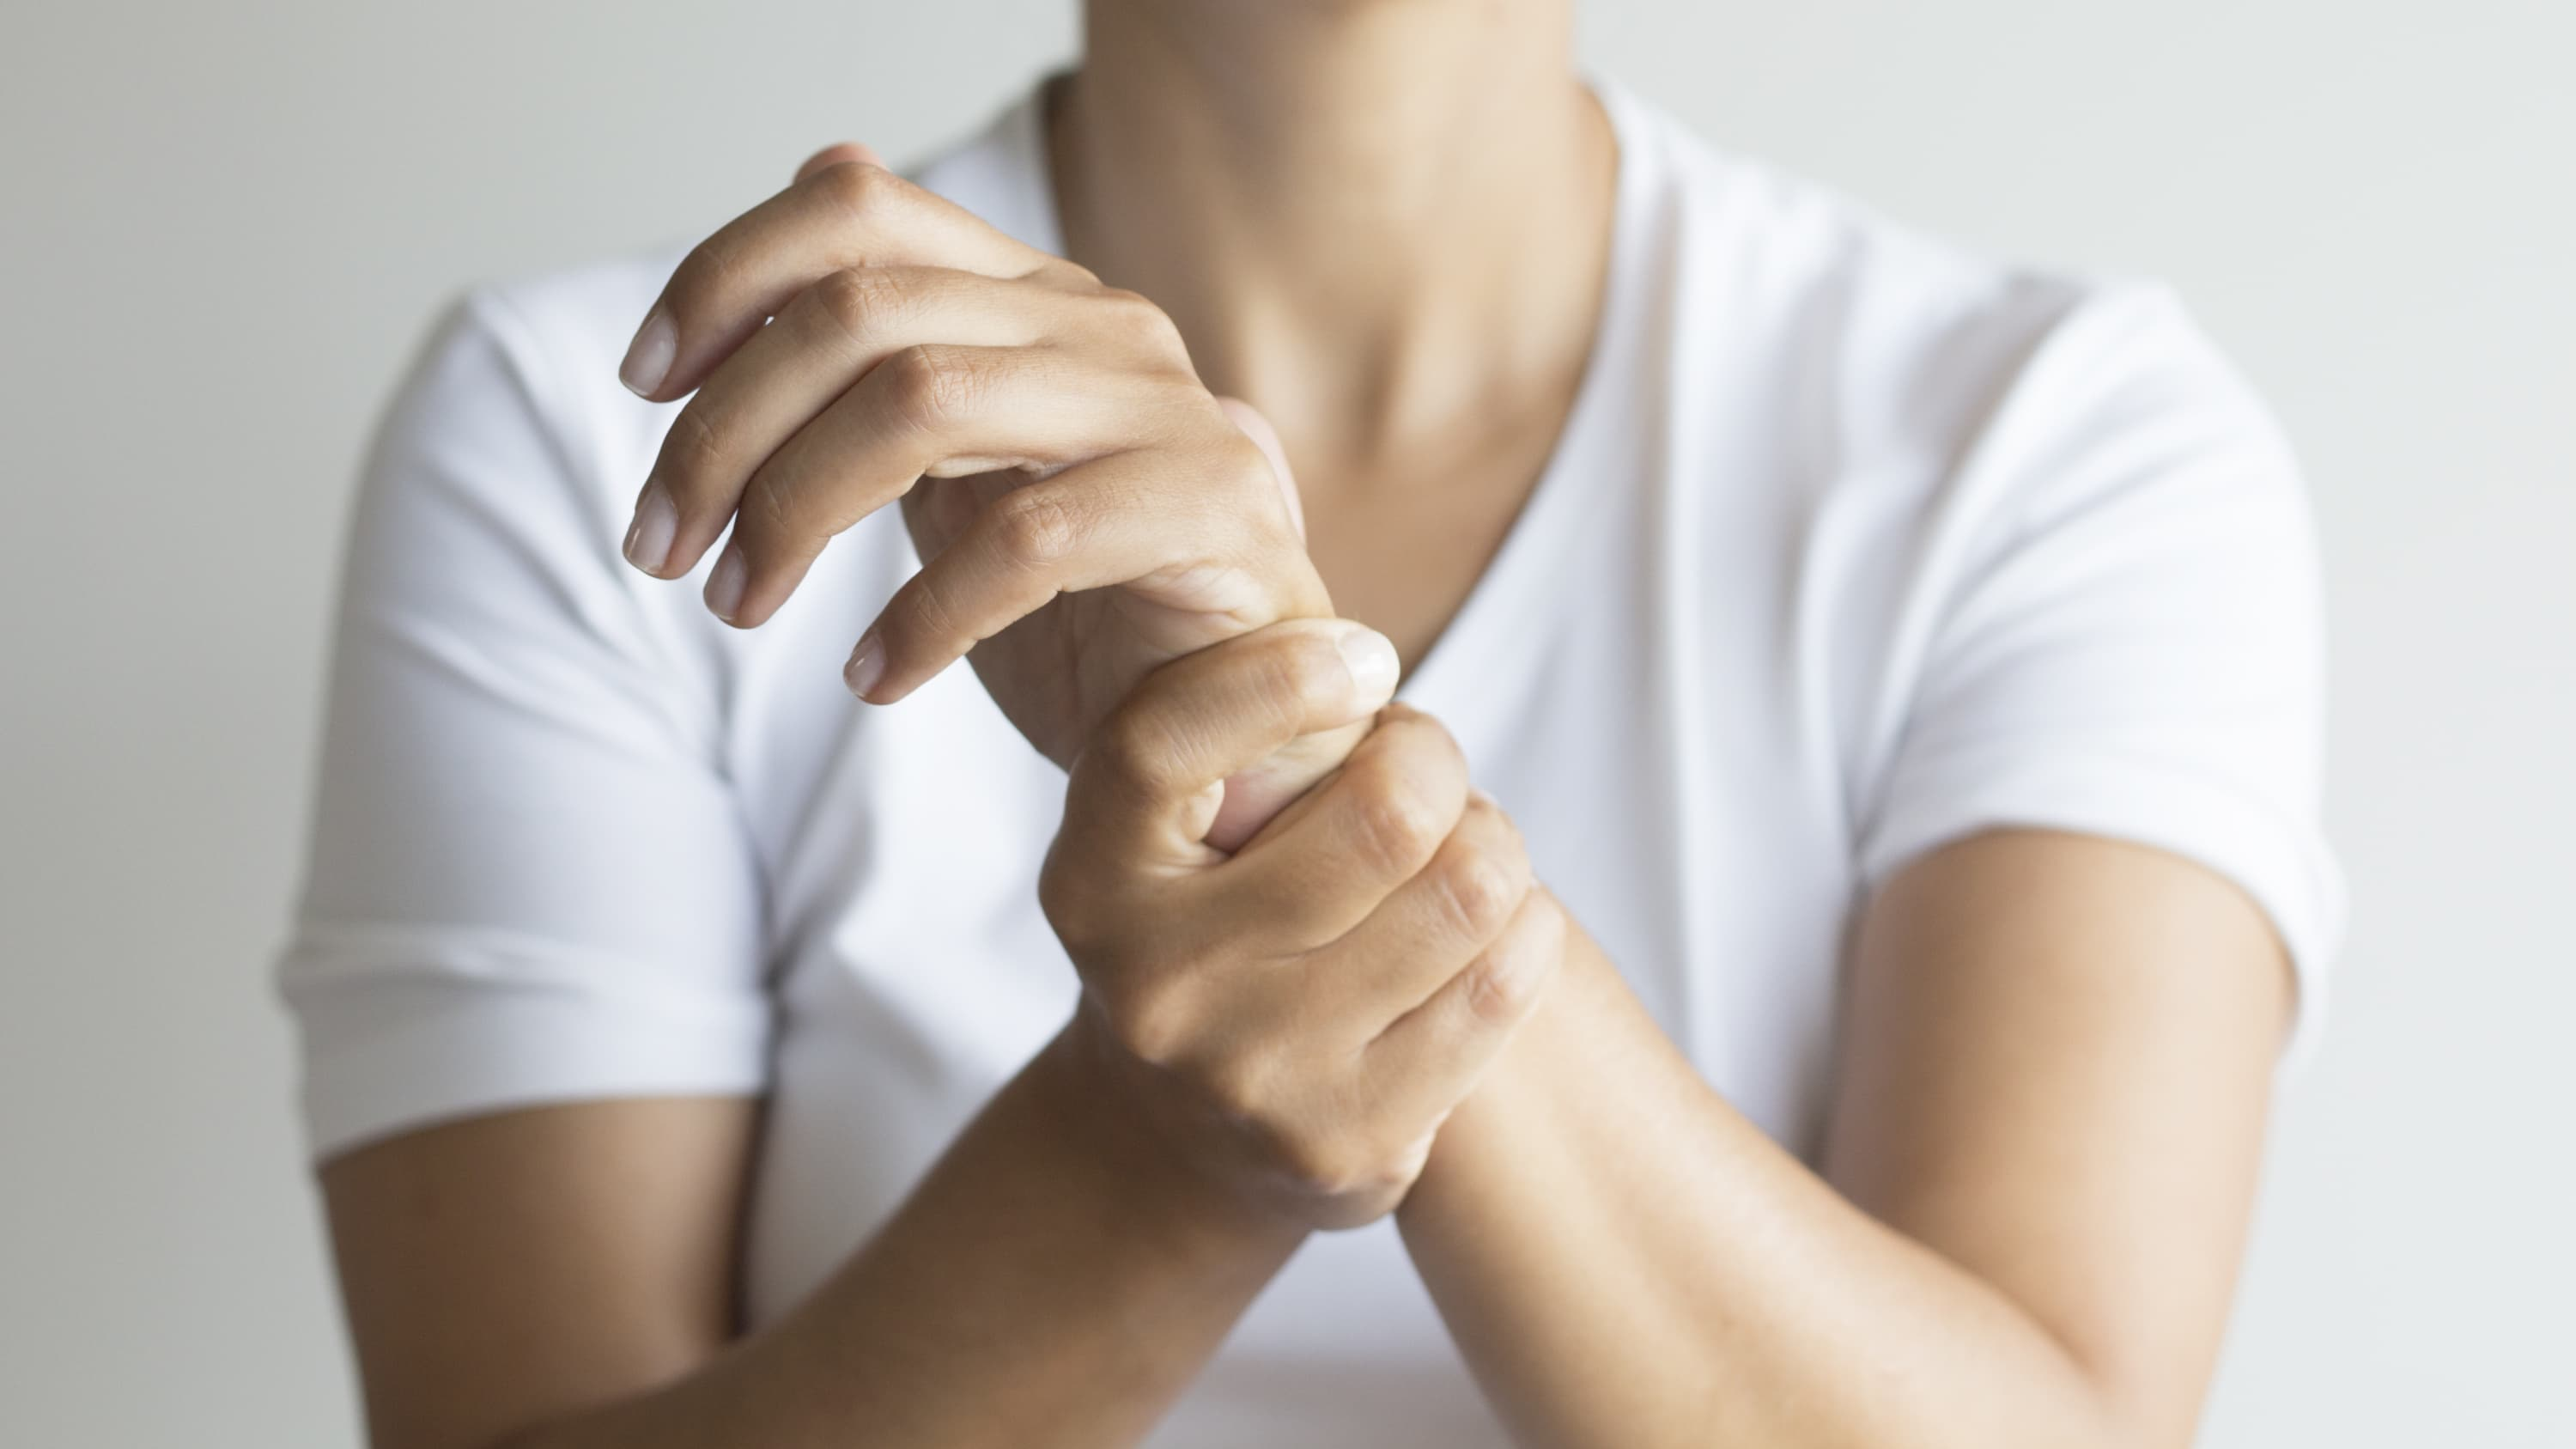 wrist pain, possbily from carpal tunnel syndrome